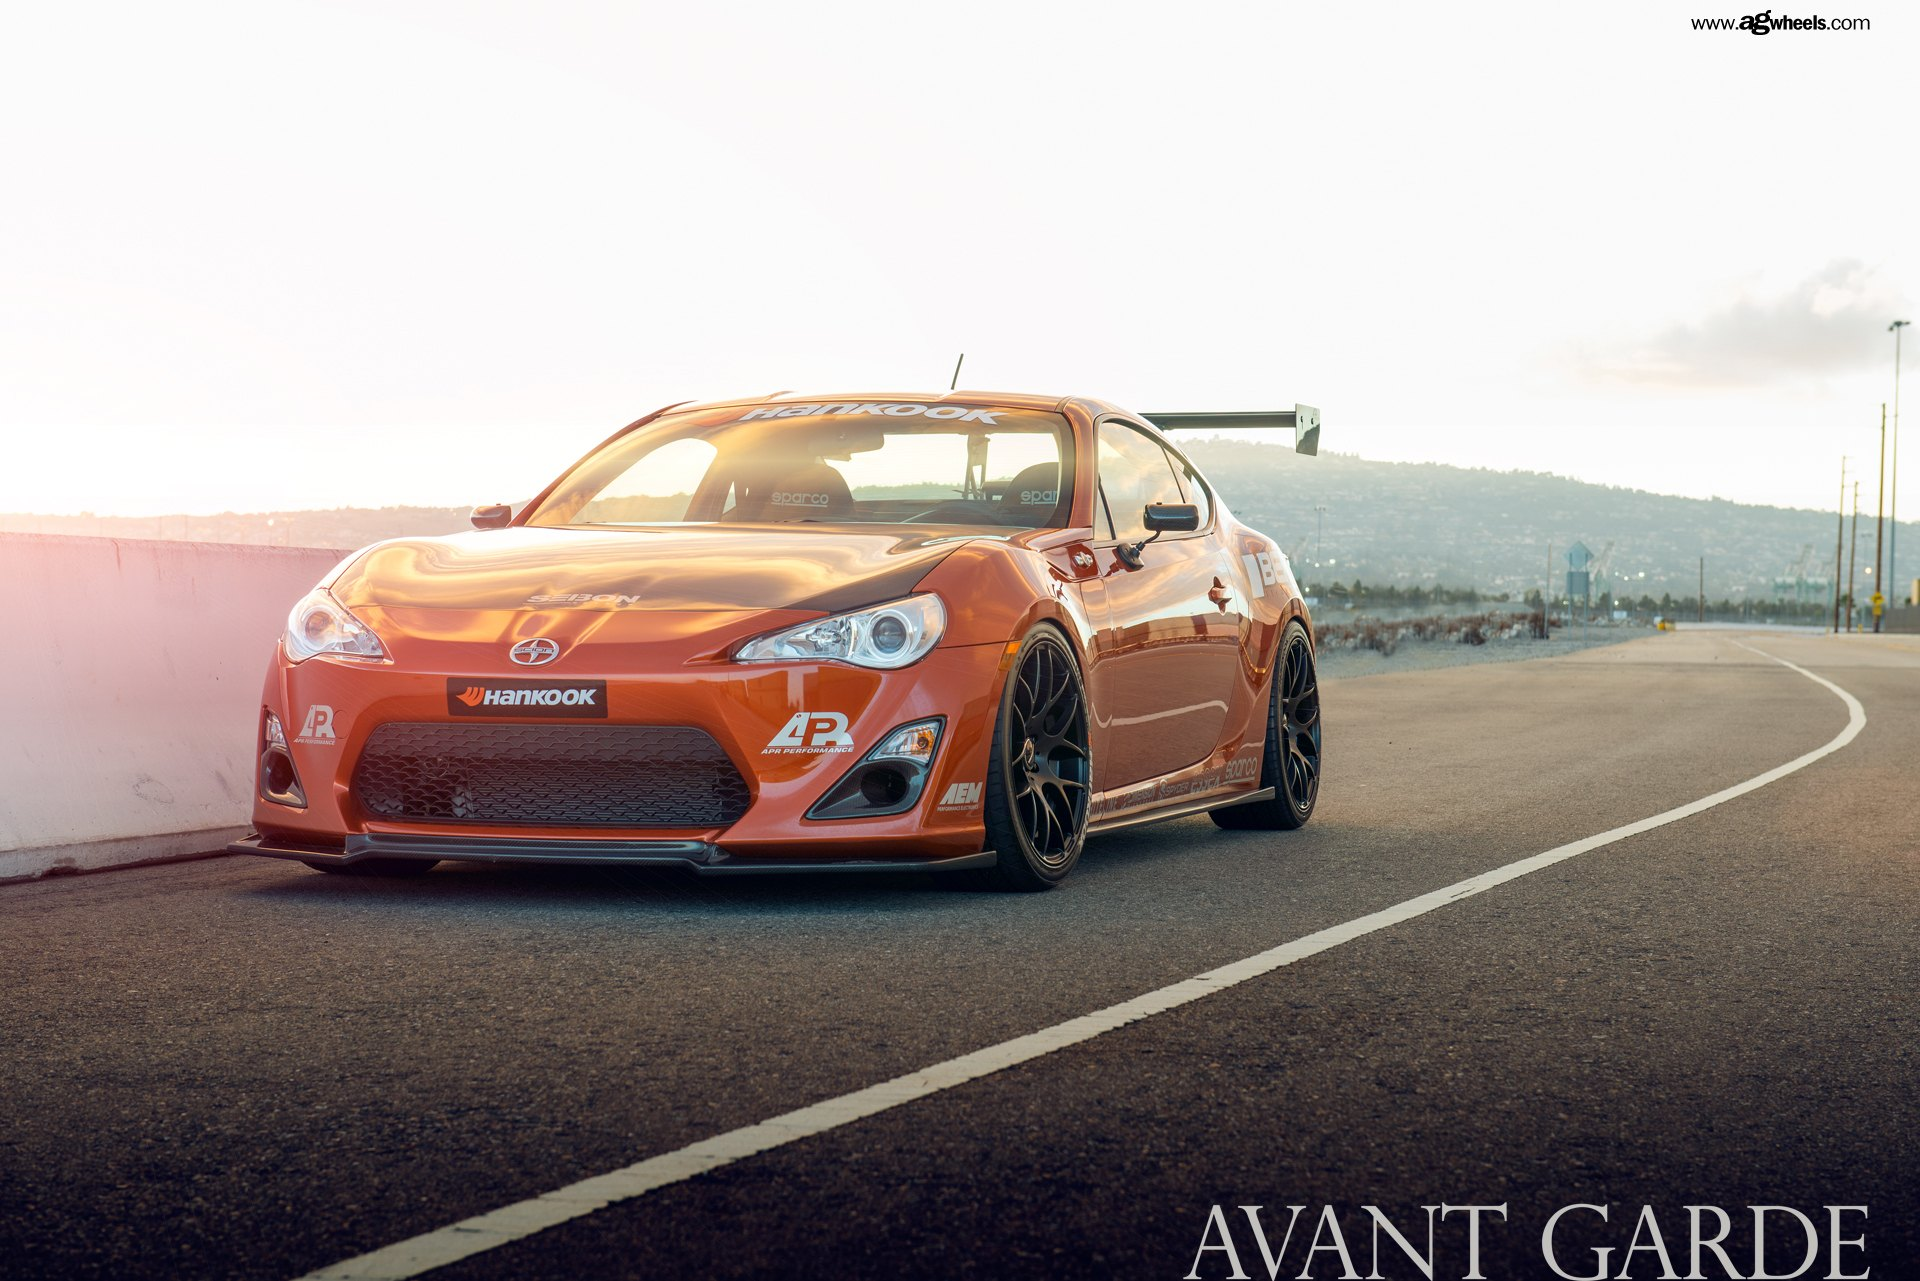 Scion Frs Parts >> Racing Pedigree Of Orange Scion Frs Emphasized By Aftermarket Parts